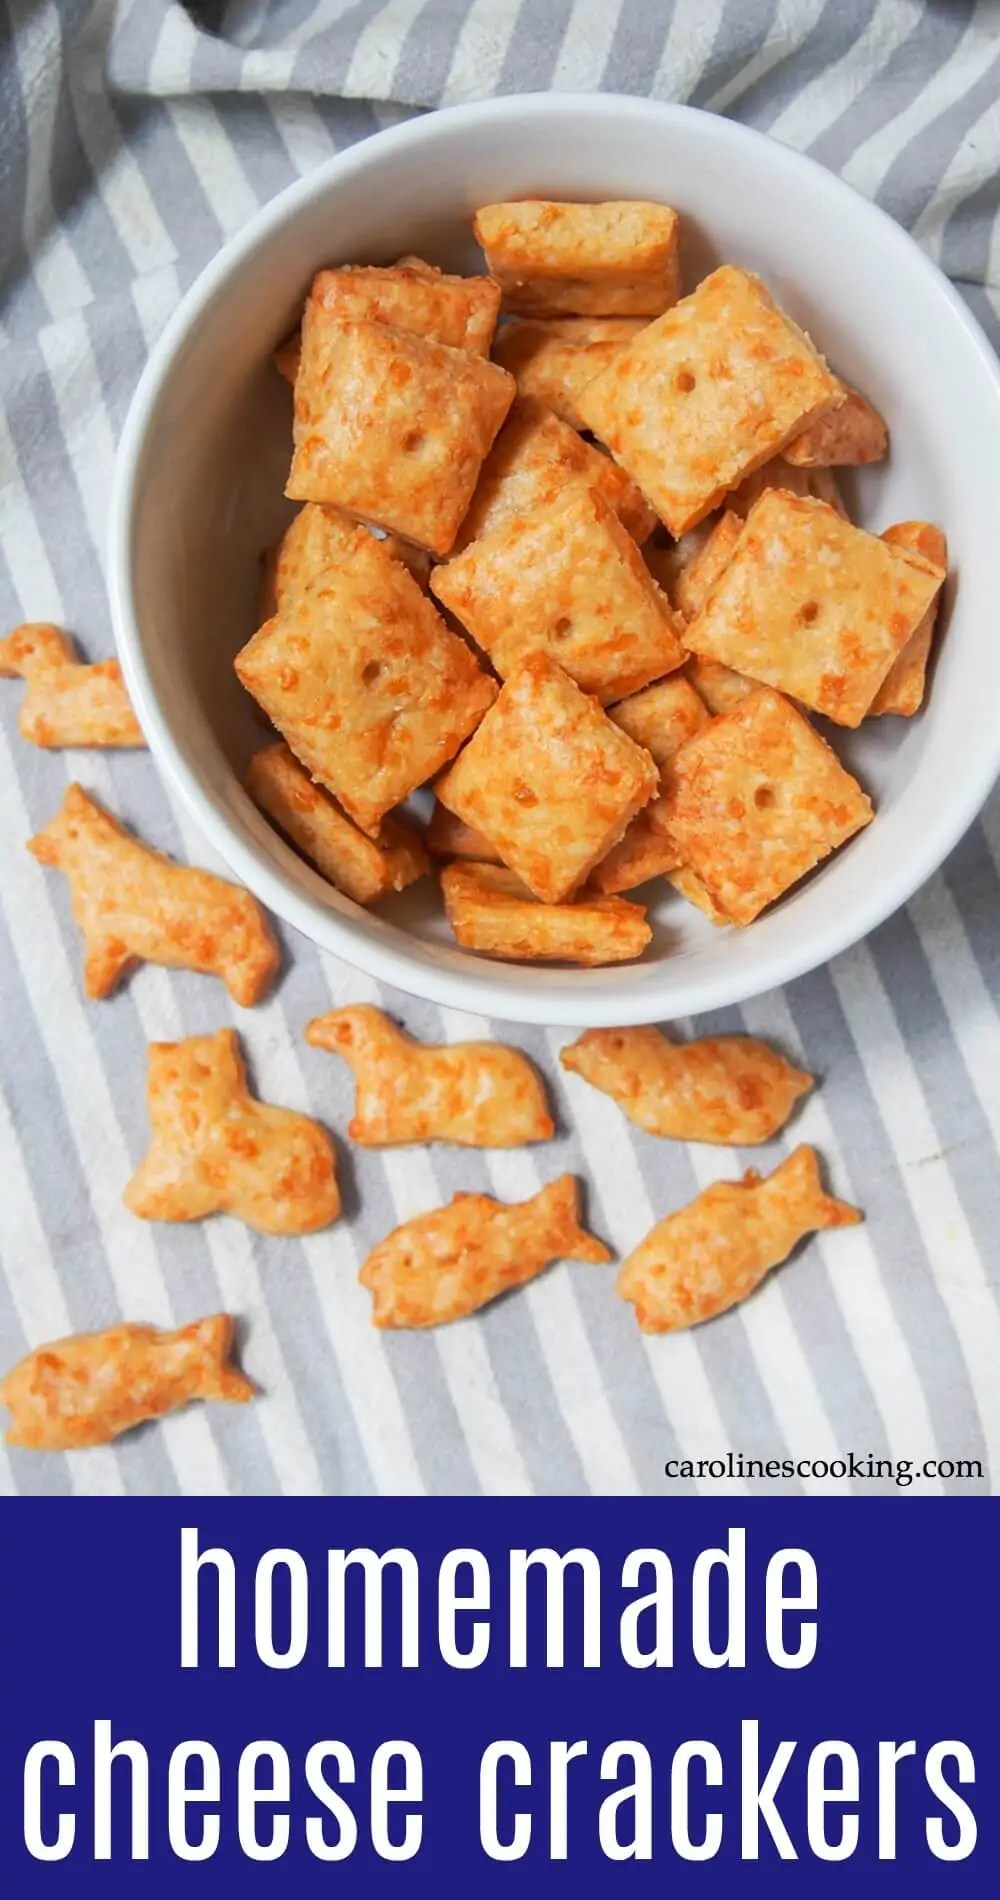 Homemade cheese crackers: Better for you than what you might find in a store, but packed with flavor, these cute little homemade cheese crackers are easy to make too. Tasty snack time awaits! They're made with whole wheat flour, baked and with minimal salt making them that bit healthier, but with plenty cheesy goodness. #cracker #cheesecracker #homamadecracker #snack